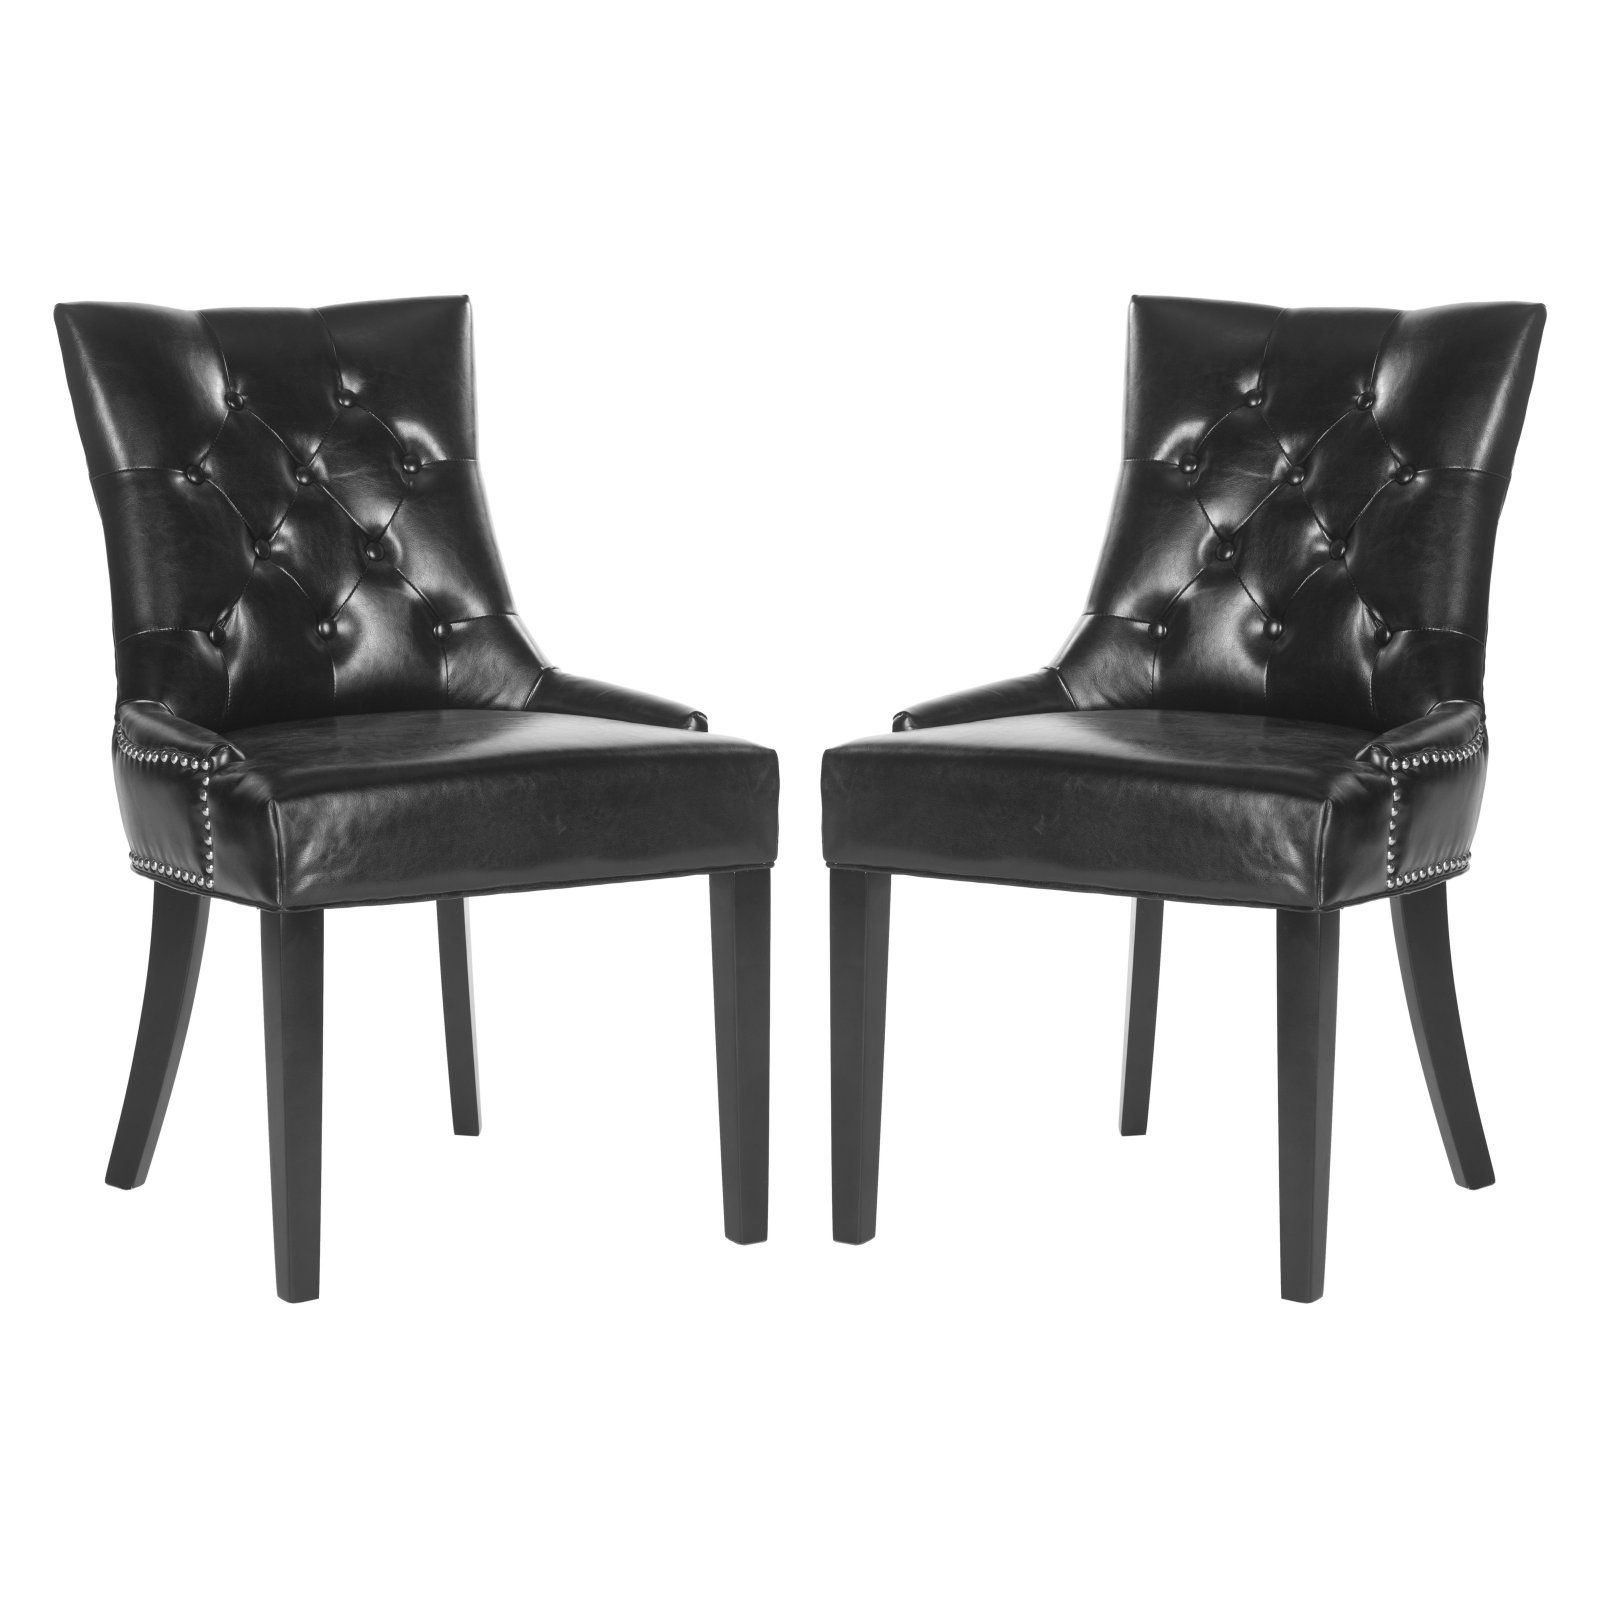 Safavieh Harlow Tufted Ring Dining Chairs Set Of 2 Leather